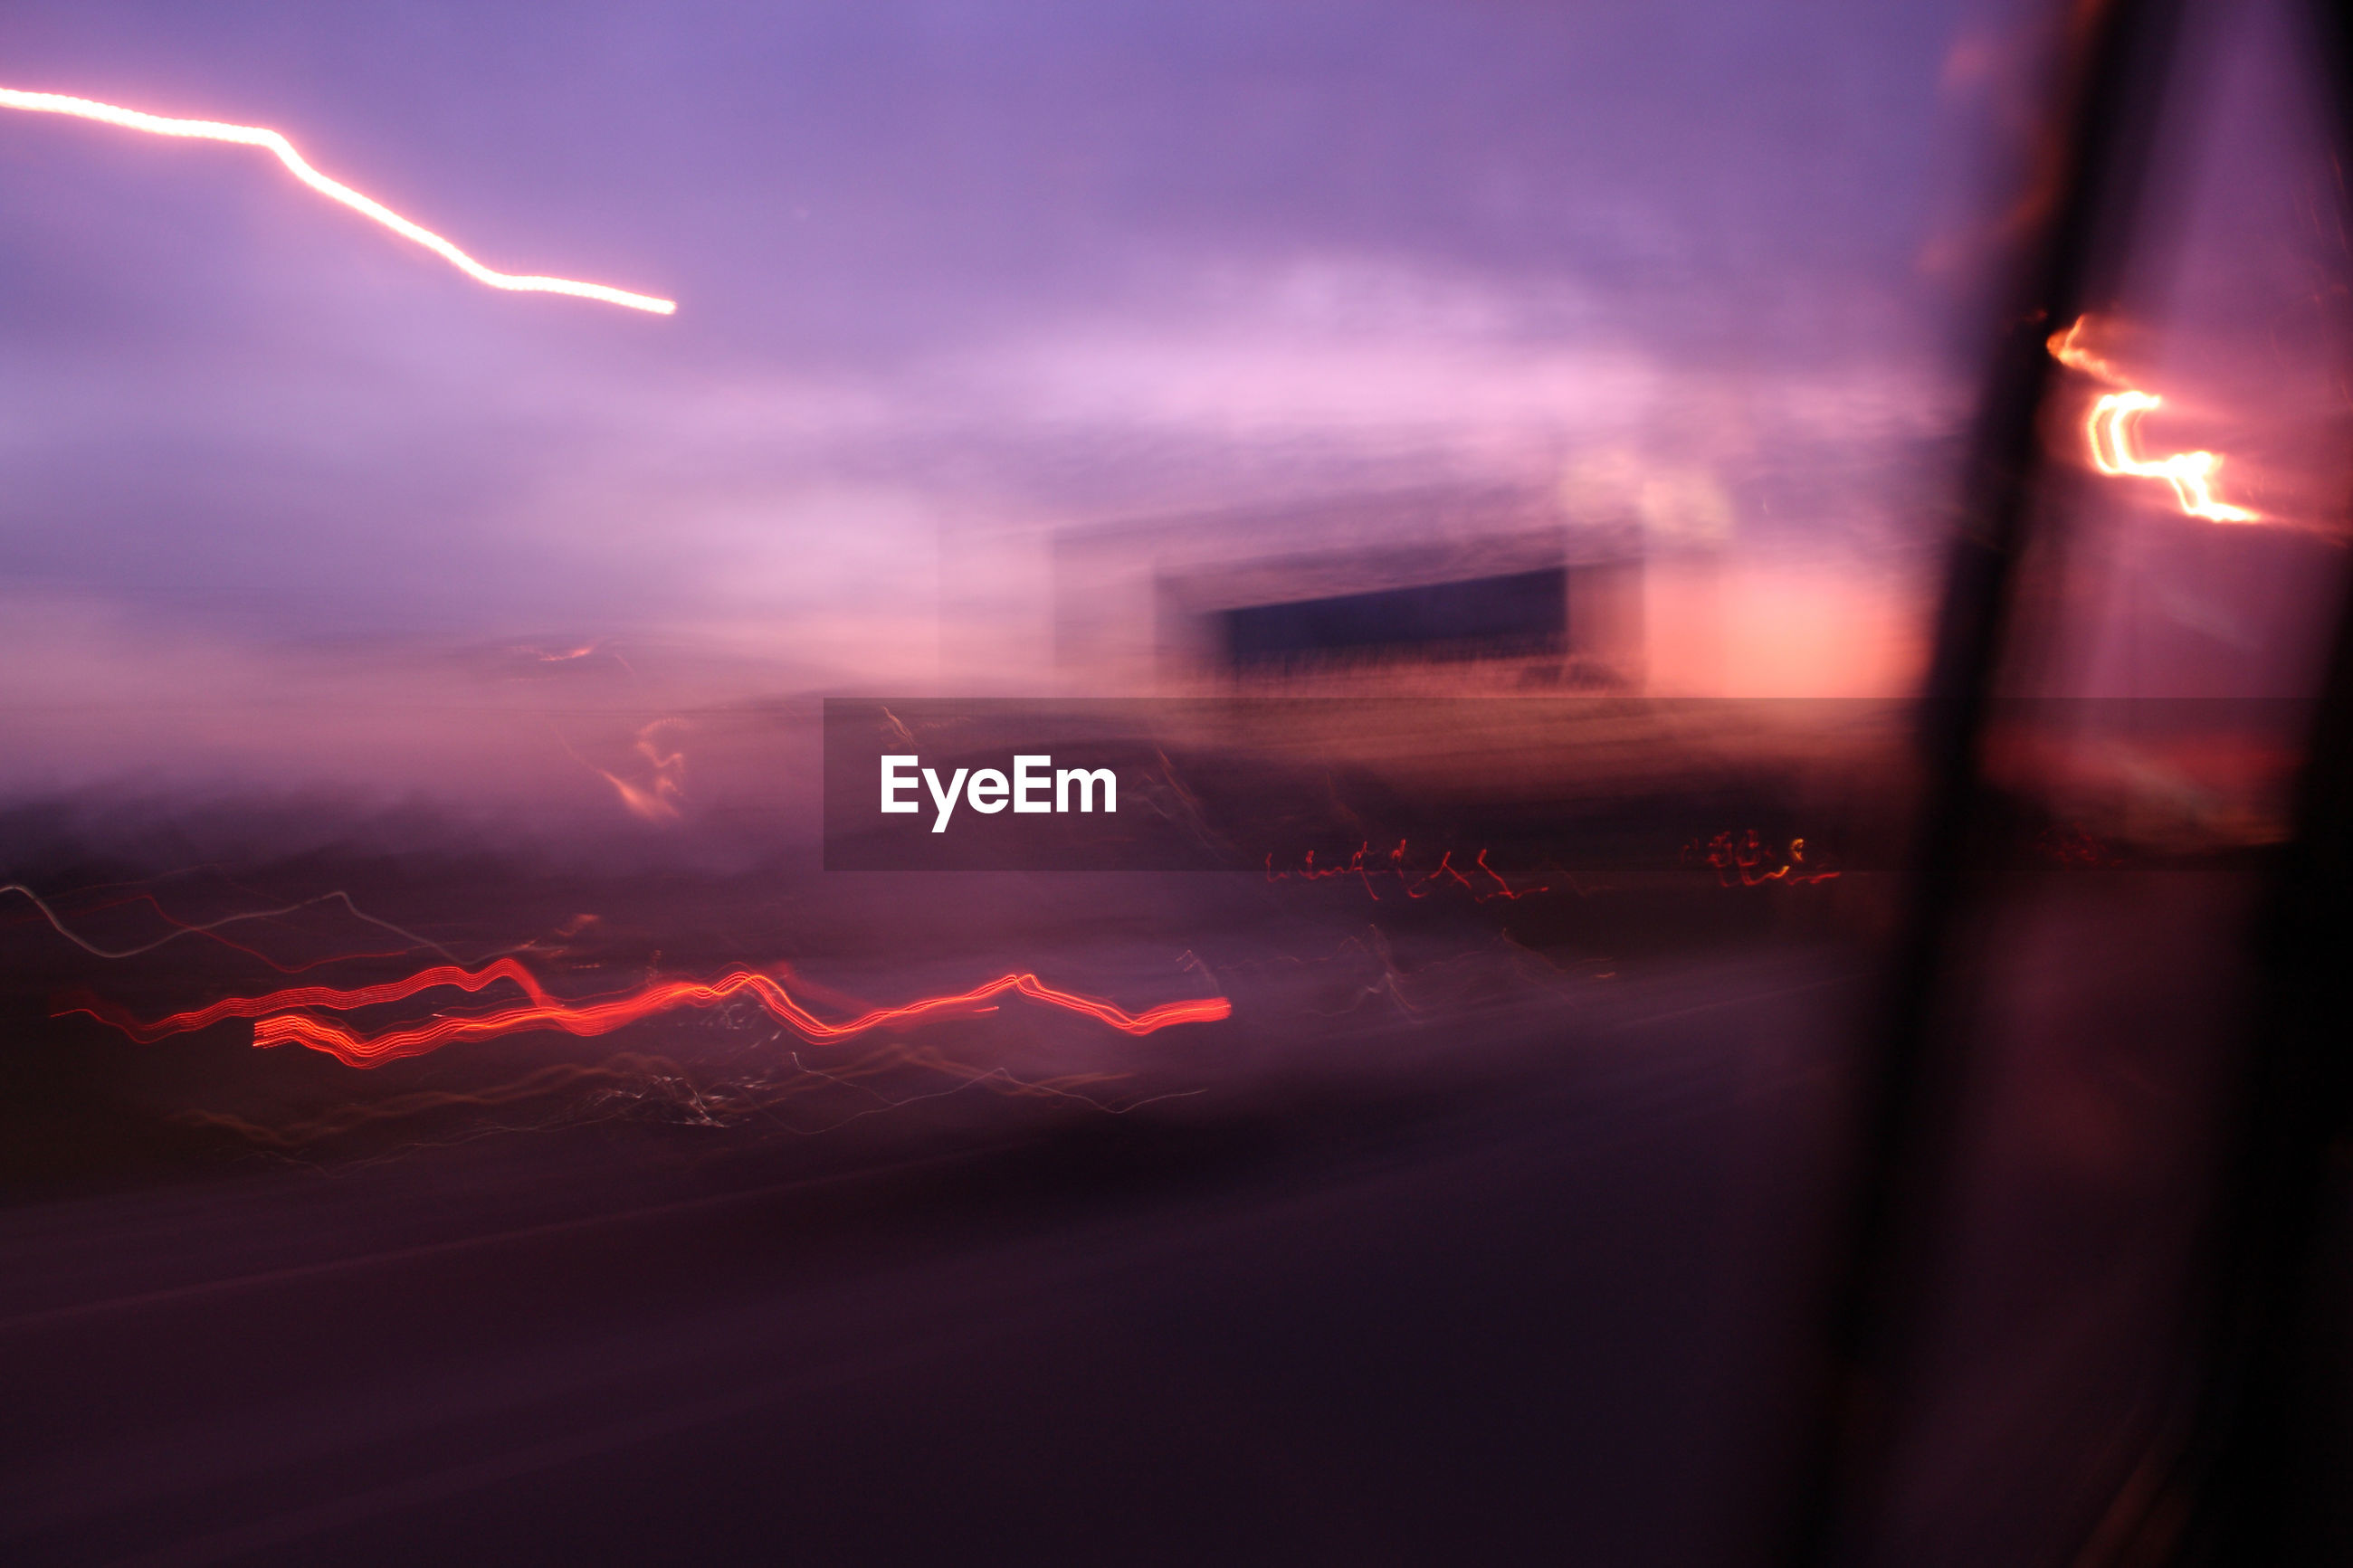 Light trail on highway seen from car window